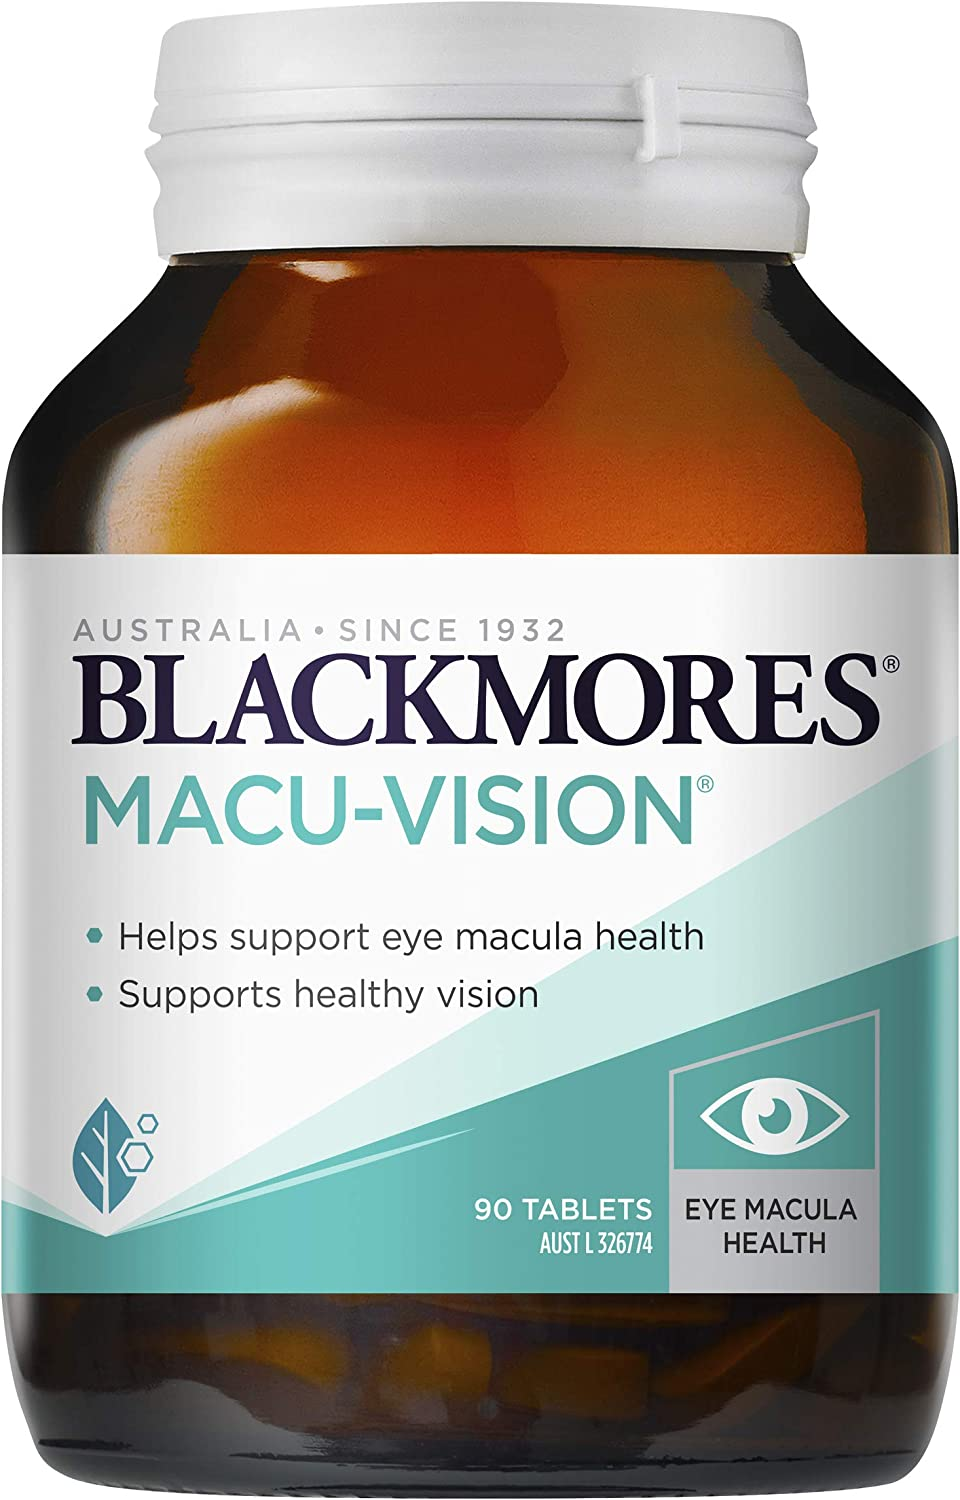 Blackmores Macu Vision 90 Tablets 5% Minneapolis Mall OFF